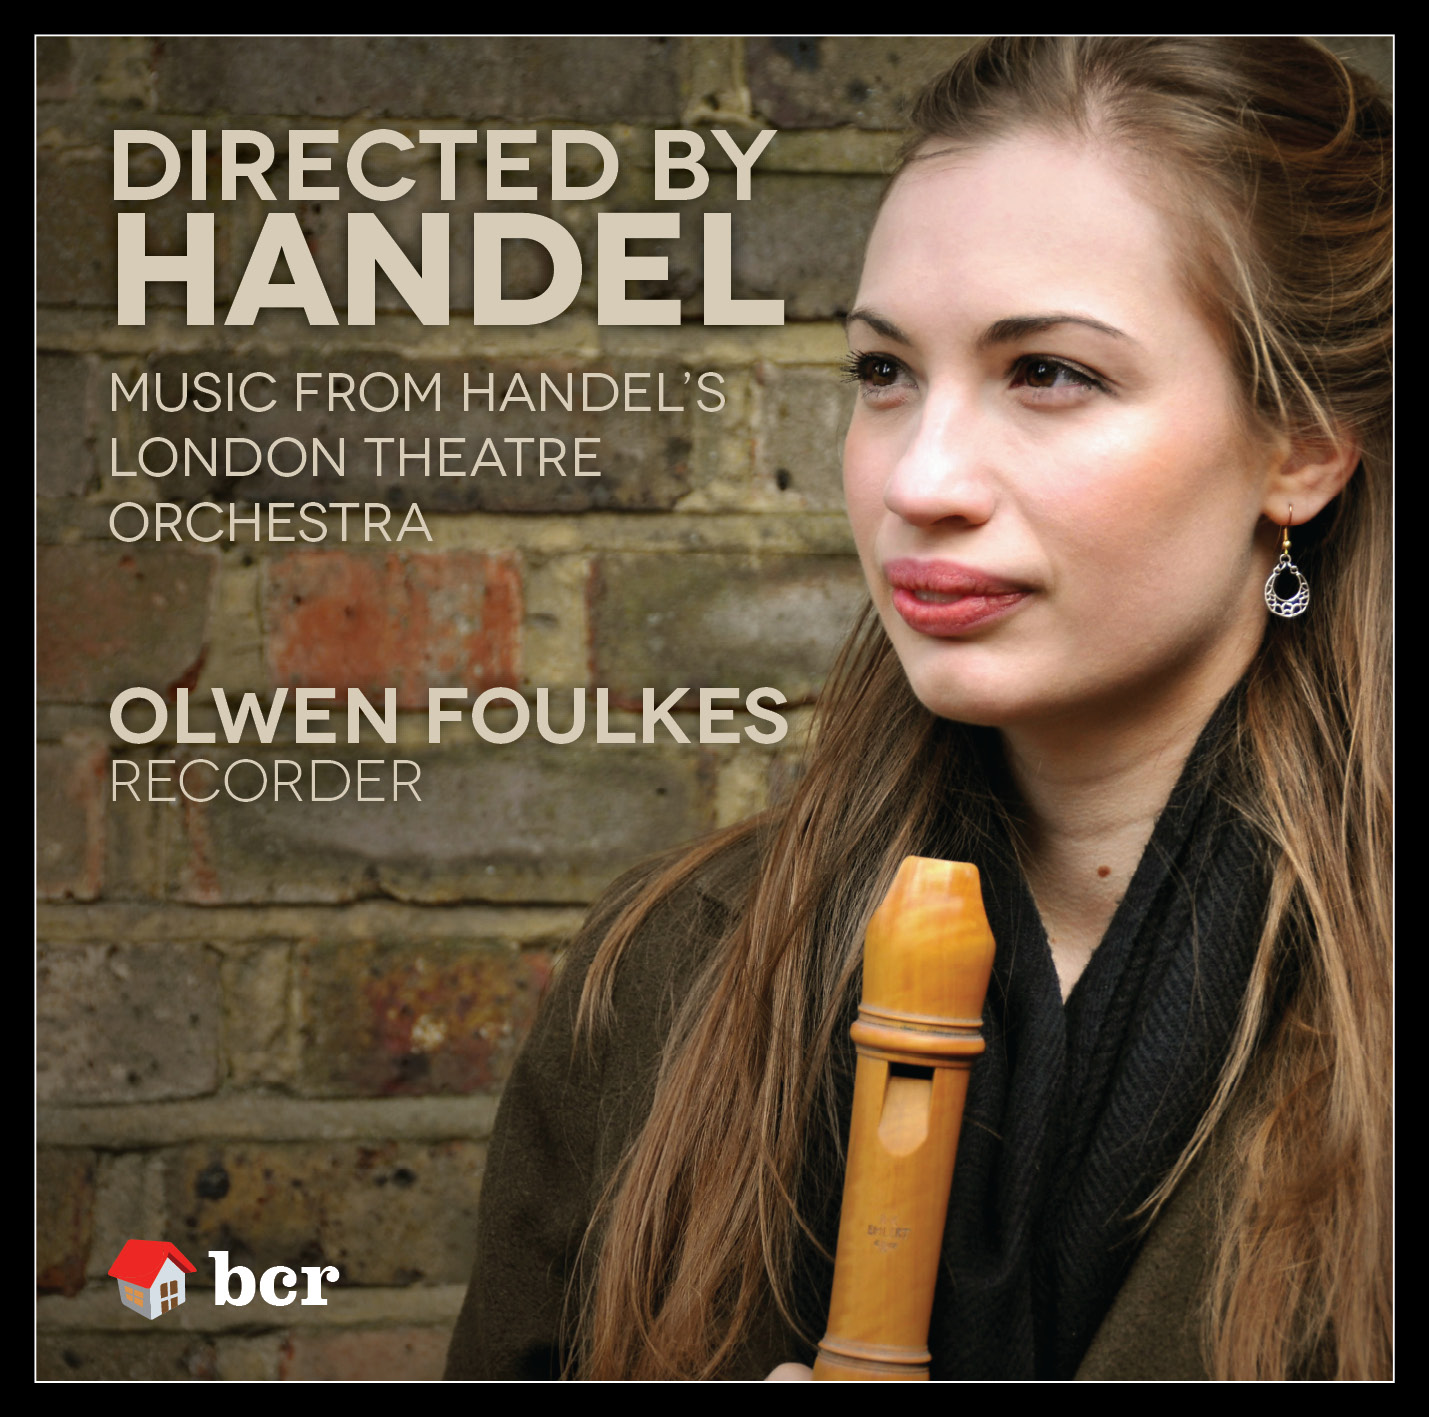 CD cover image of Directed by Handel, showing Olwen Foulkes holding recorder